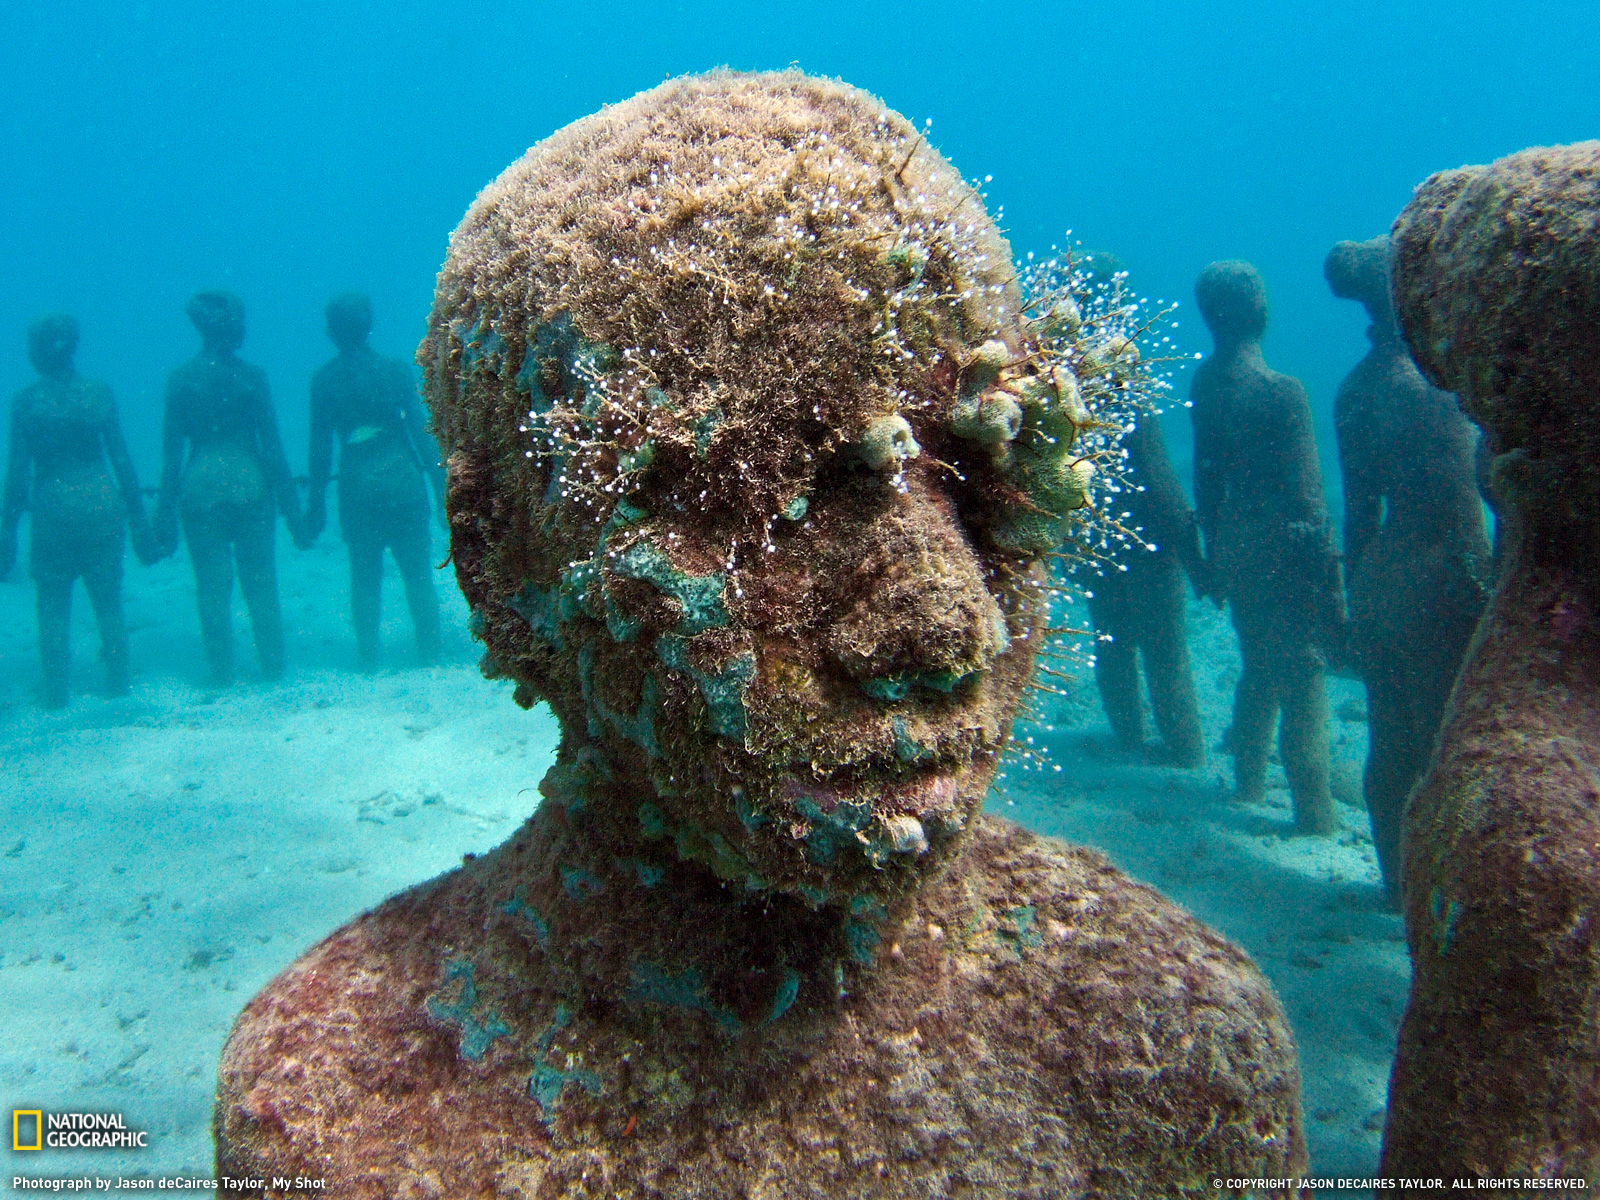 Grenada Picture Underwater Wallpaper National Geographic Photo 1600x1200